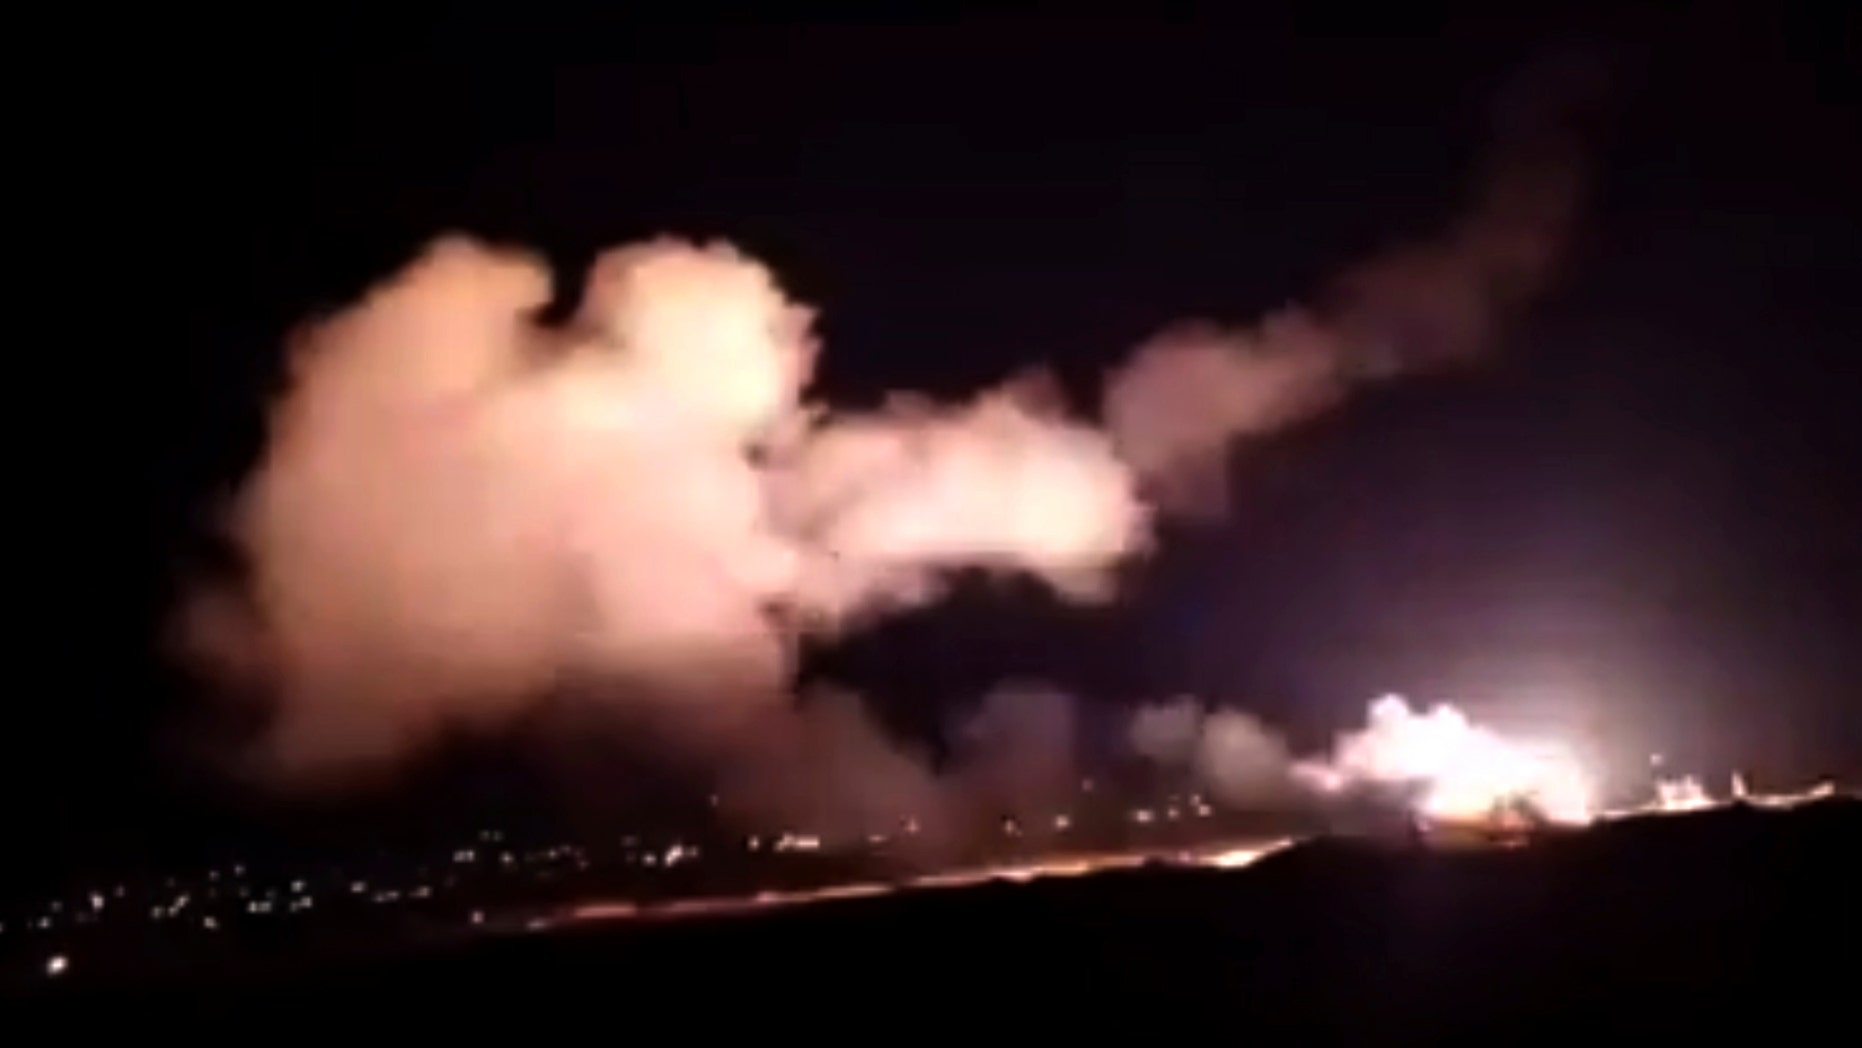 """This frame grab from a video provided by the Syrian official news agency SANA shows that rockets are flying into the sky near Damascus, Syria, Tuesday, December 25, 201<div class=""""e3lan e3lan-in-post1""""><script async src=""""//pagead2.googlesyndication.com/pagead/js/adsbygoogle.js""""></script> <!-- Text_Display_Ad --> <ins class=""""adsbygoogle""""      style=""""display:block""""      data-ad-client=""""ca-pub-7542518979287585""""      data-ad-slot=""""2196042218""""      data-ad-format=""""auto""""></ins> <script> (adsbygoogle = window.adsbygoogle    []).push({}); </script></div>8. Israeli fighters are flying over Lebanon and firing rockets Areas near the Syrian capital Damascus hit a weapons depot late Tuesday and wounded three soldiers, Syrian state media said most missiles were shot down by air defense units. (SANA via AP)"""